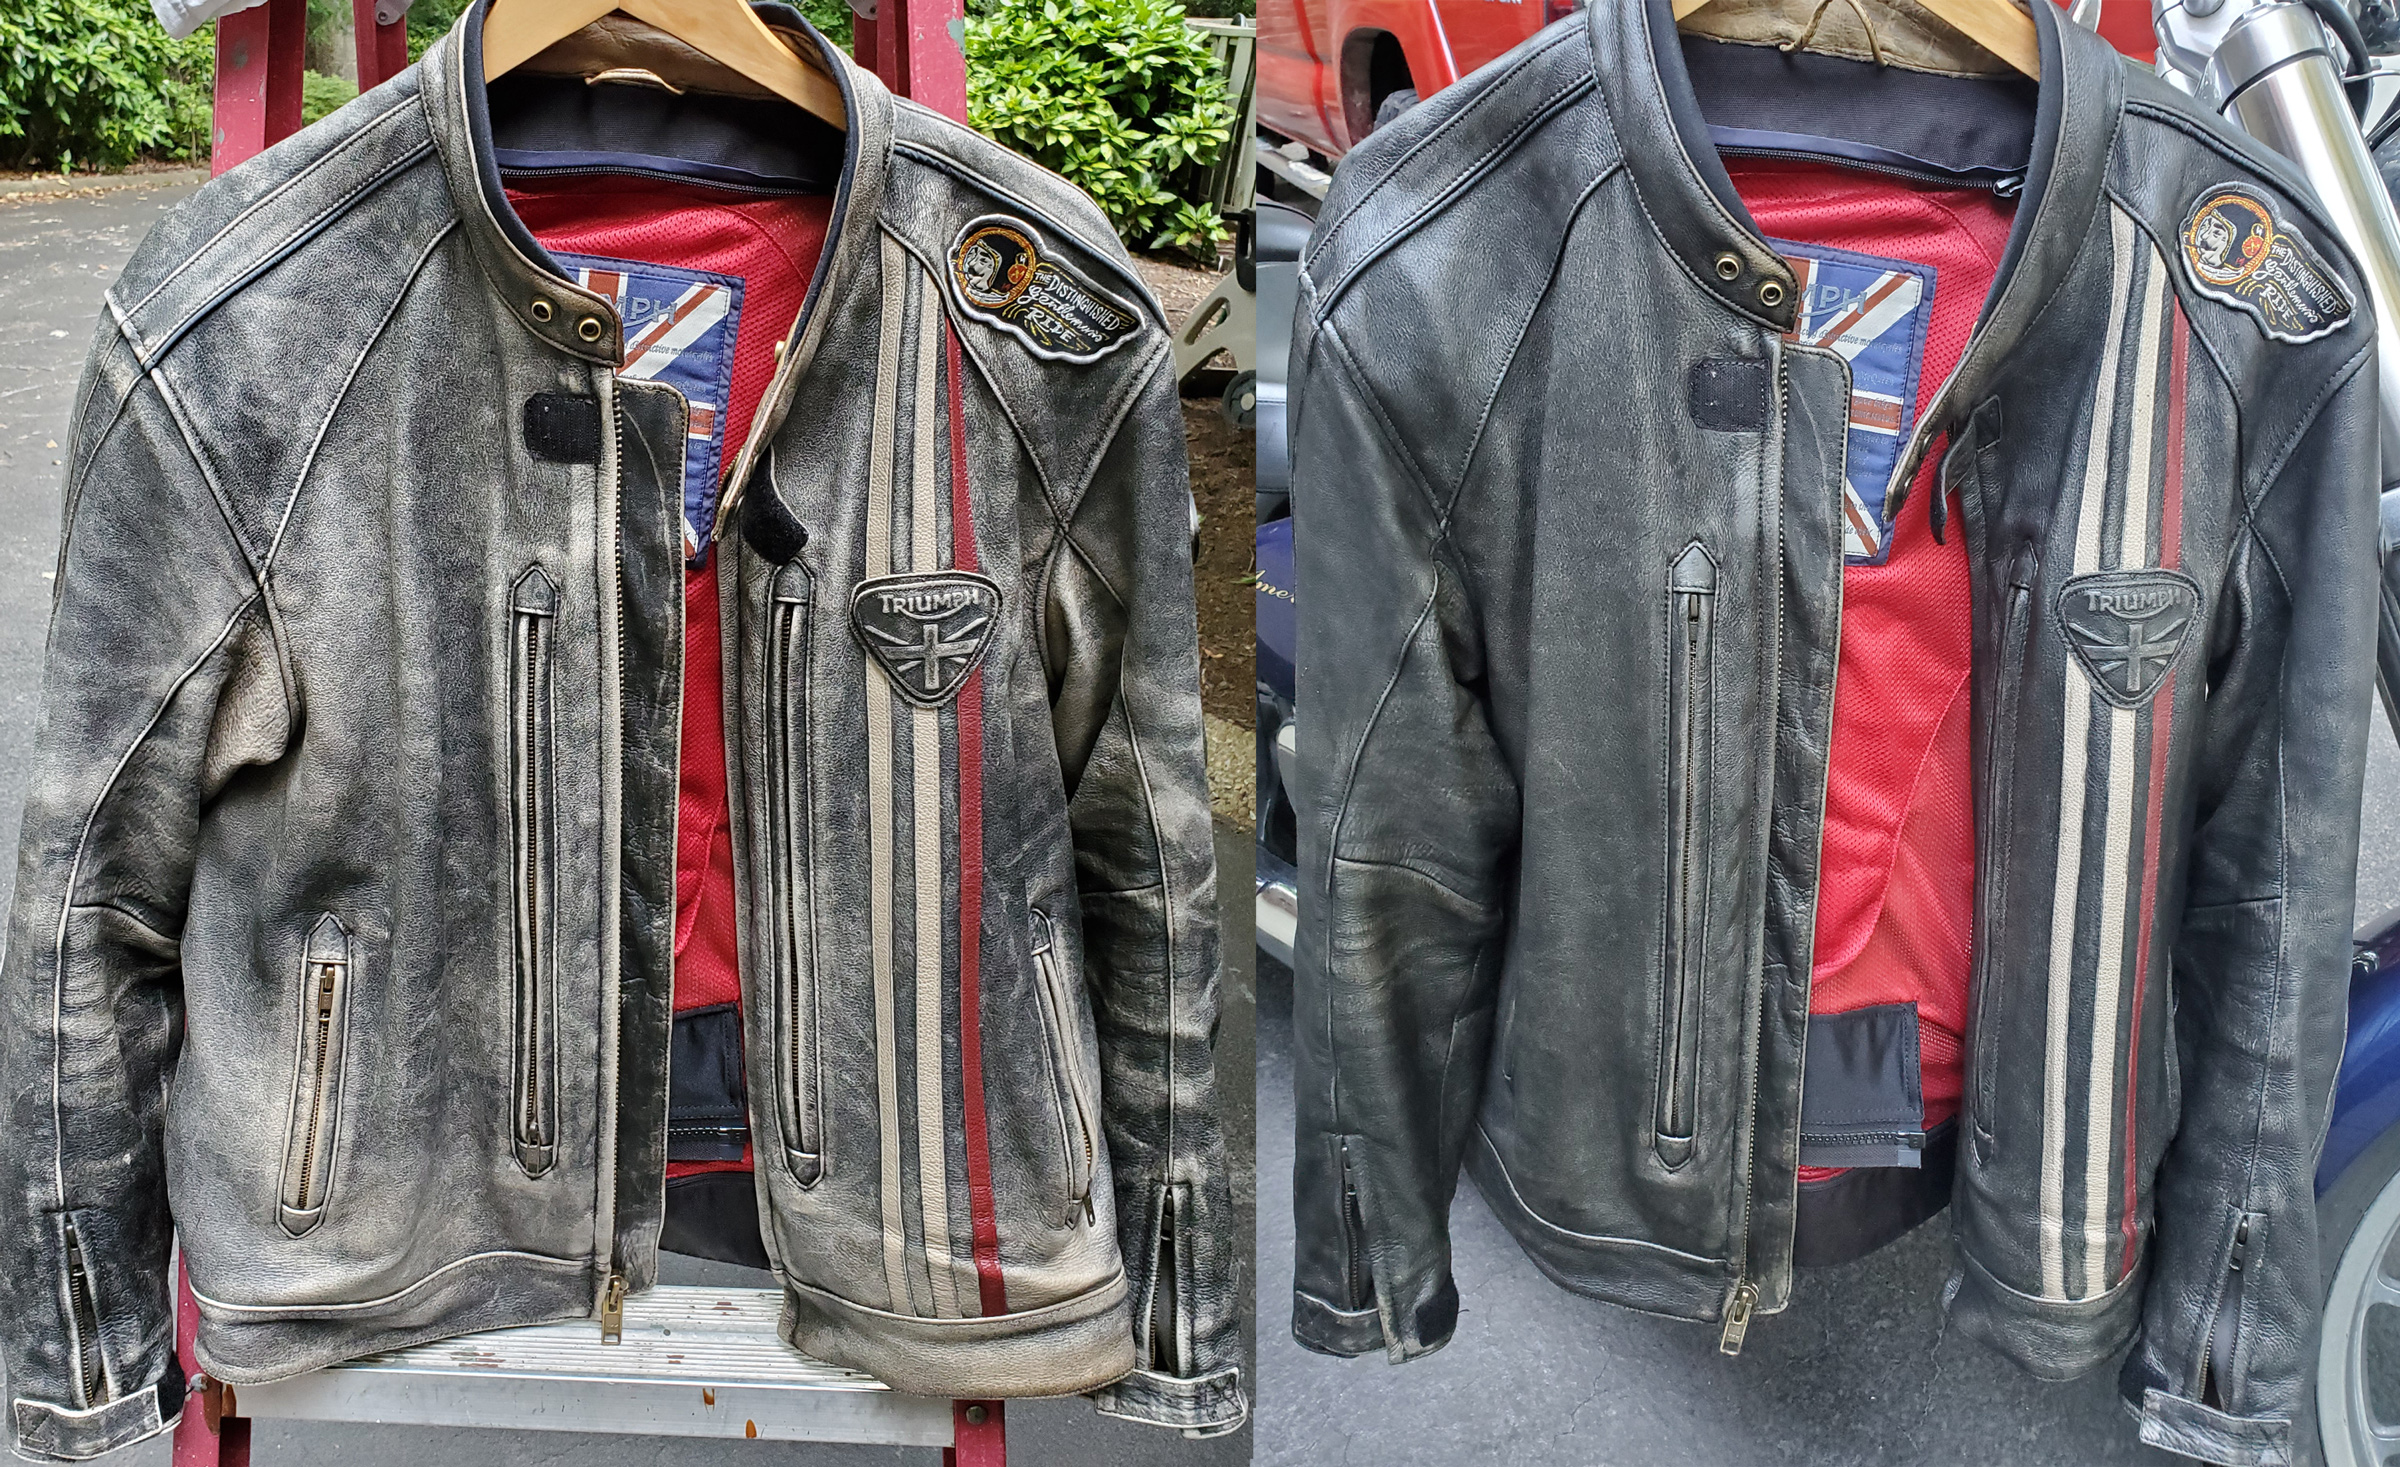 Before and After pictures of the front of Sam's jacket